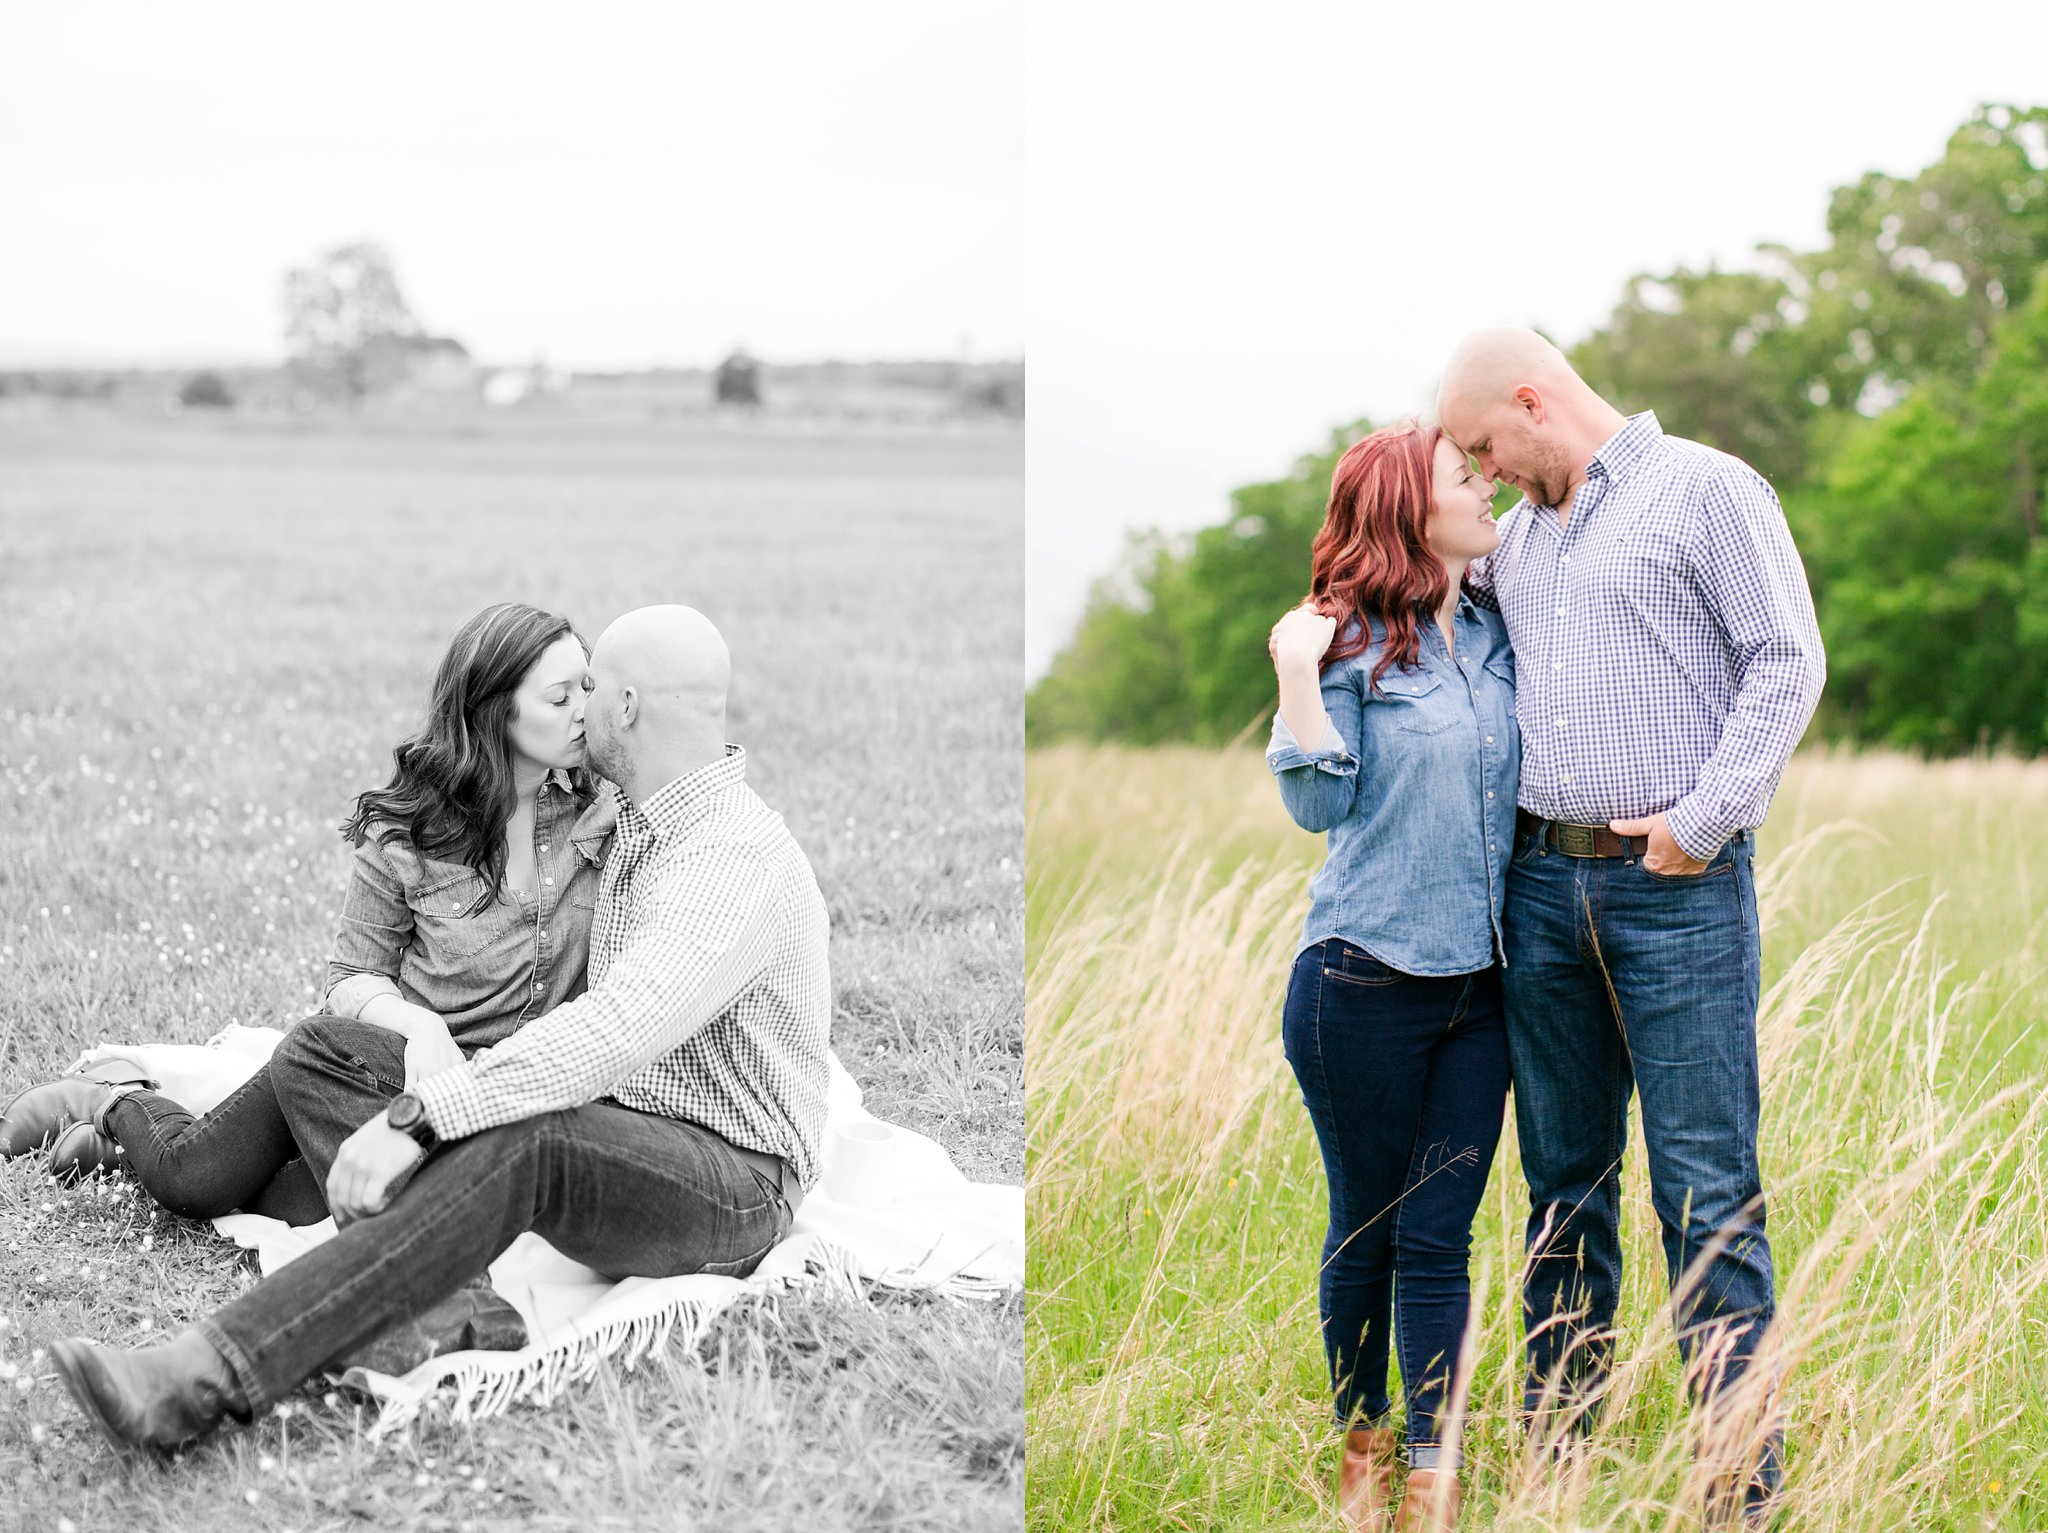 Old Town Manassas Battlefield Engagement Photos Virginia Wedding Photographer Jessica & Jason-121.jpg